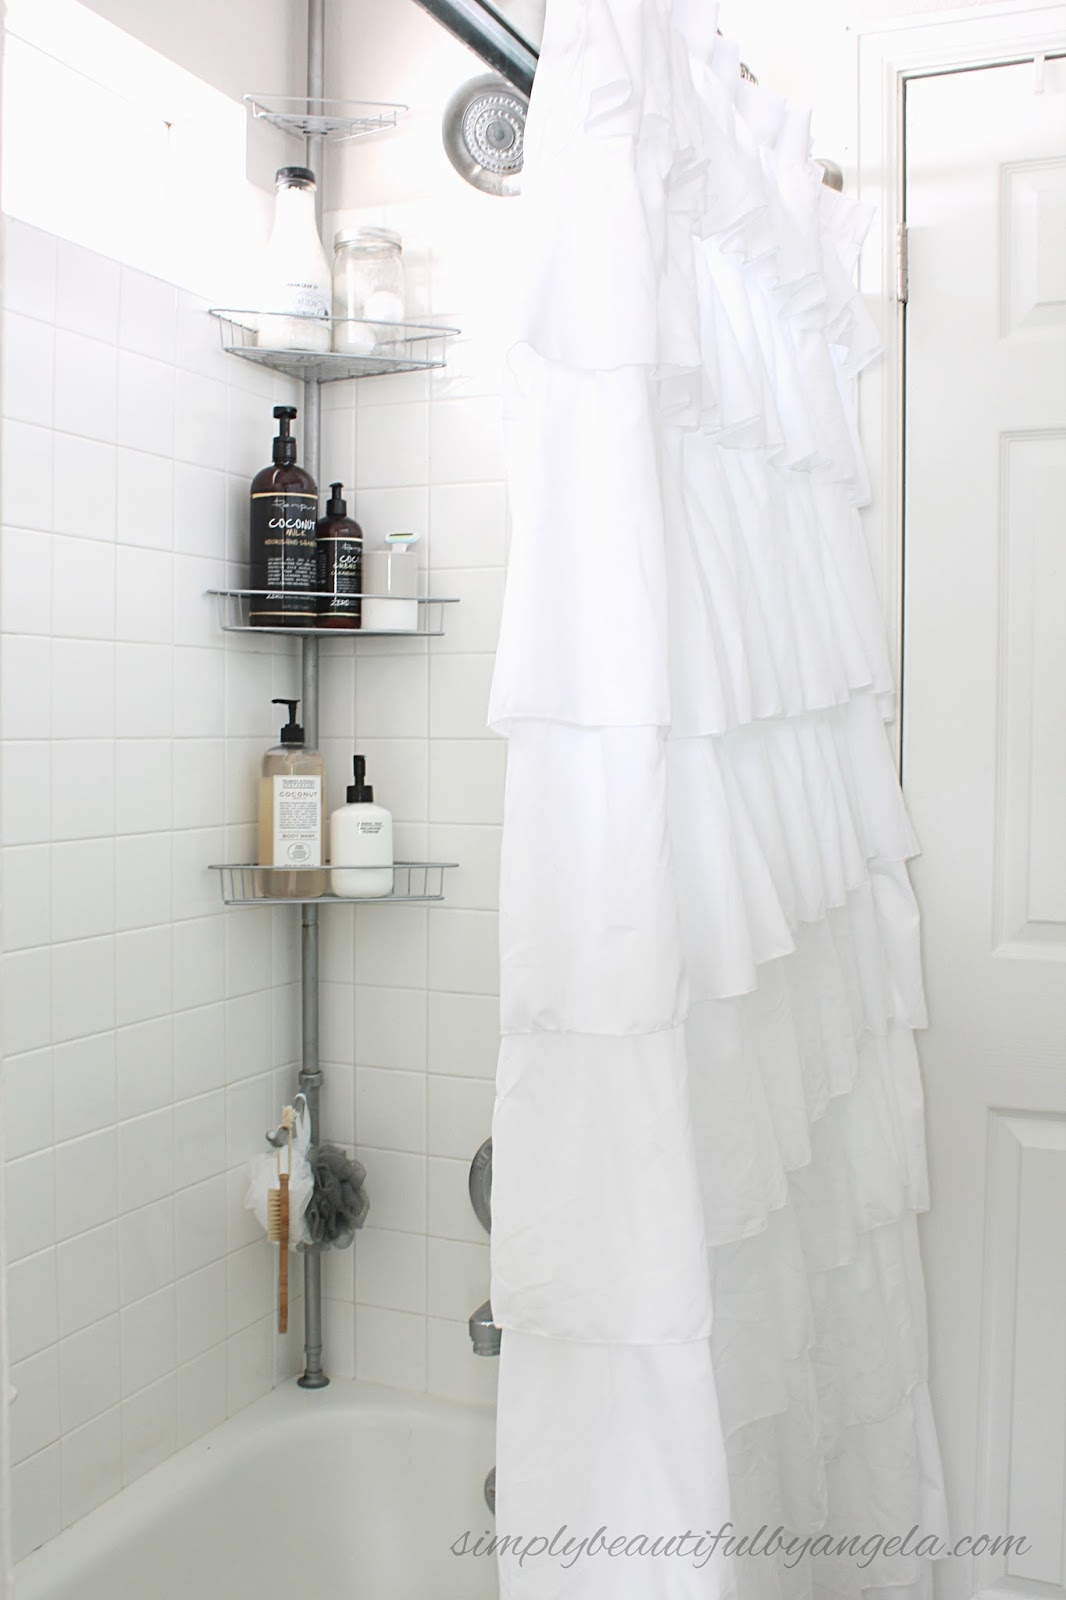 Simply Beautiful by Angela: How To Refresh A Rusted Shower Caddy